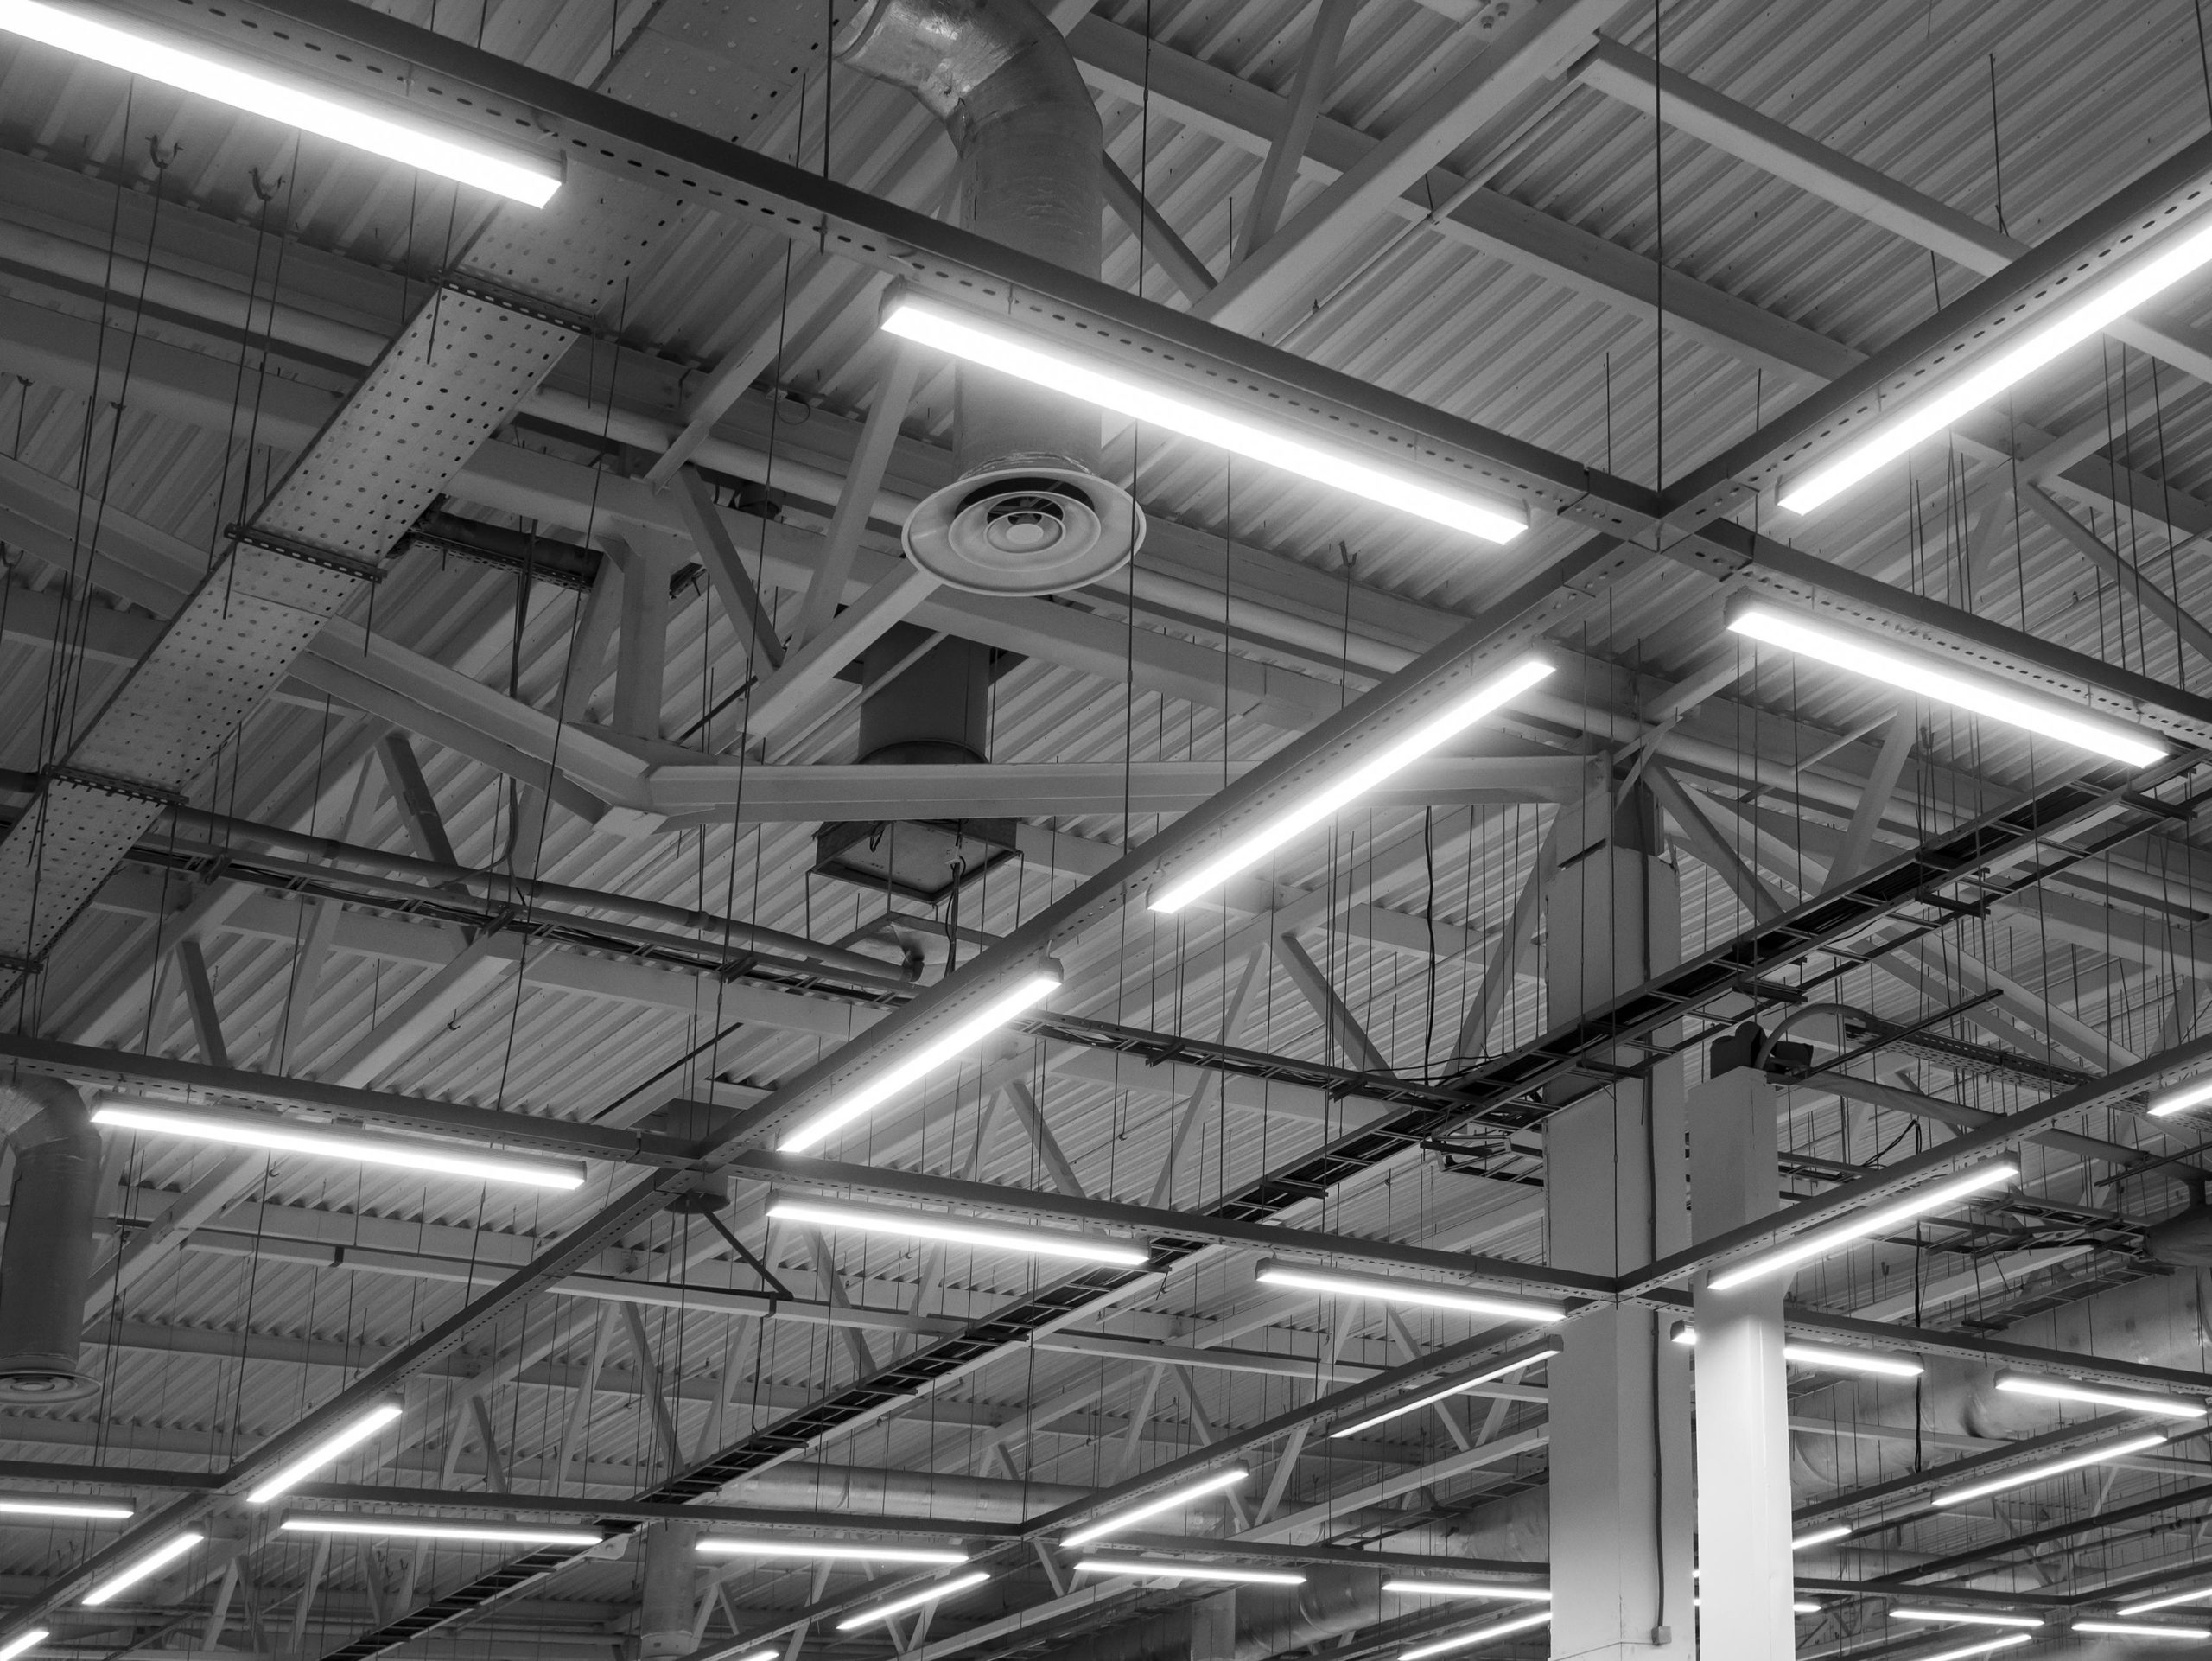 How lighting control system works